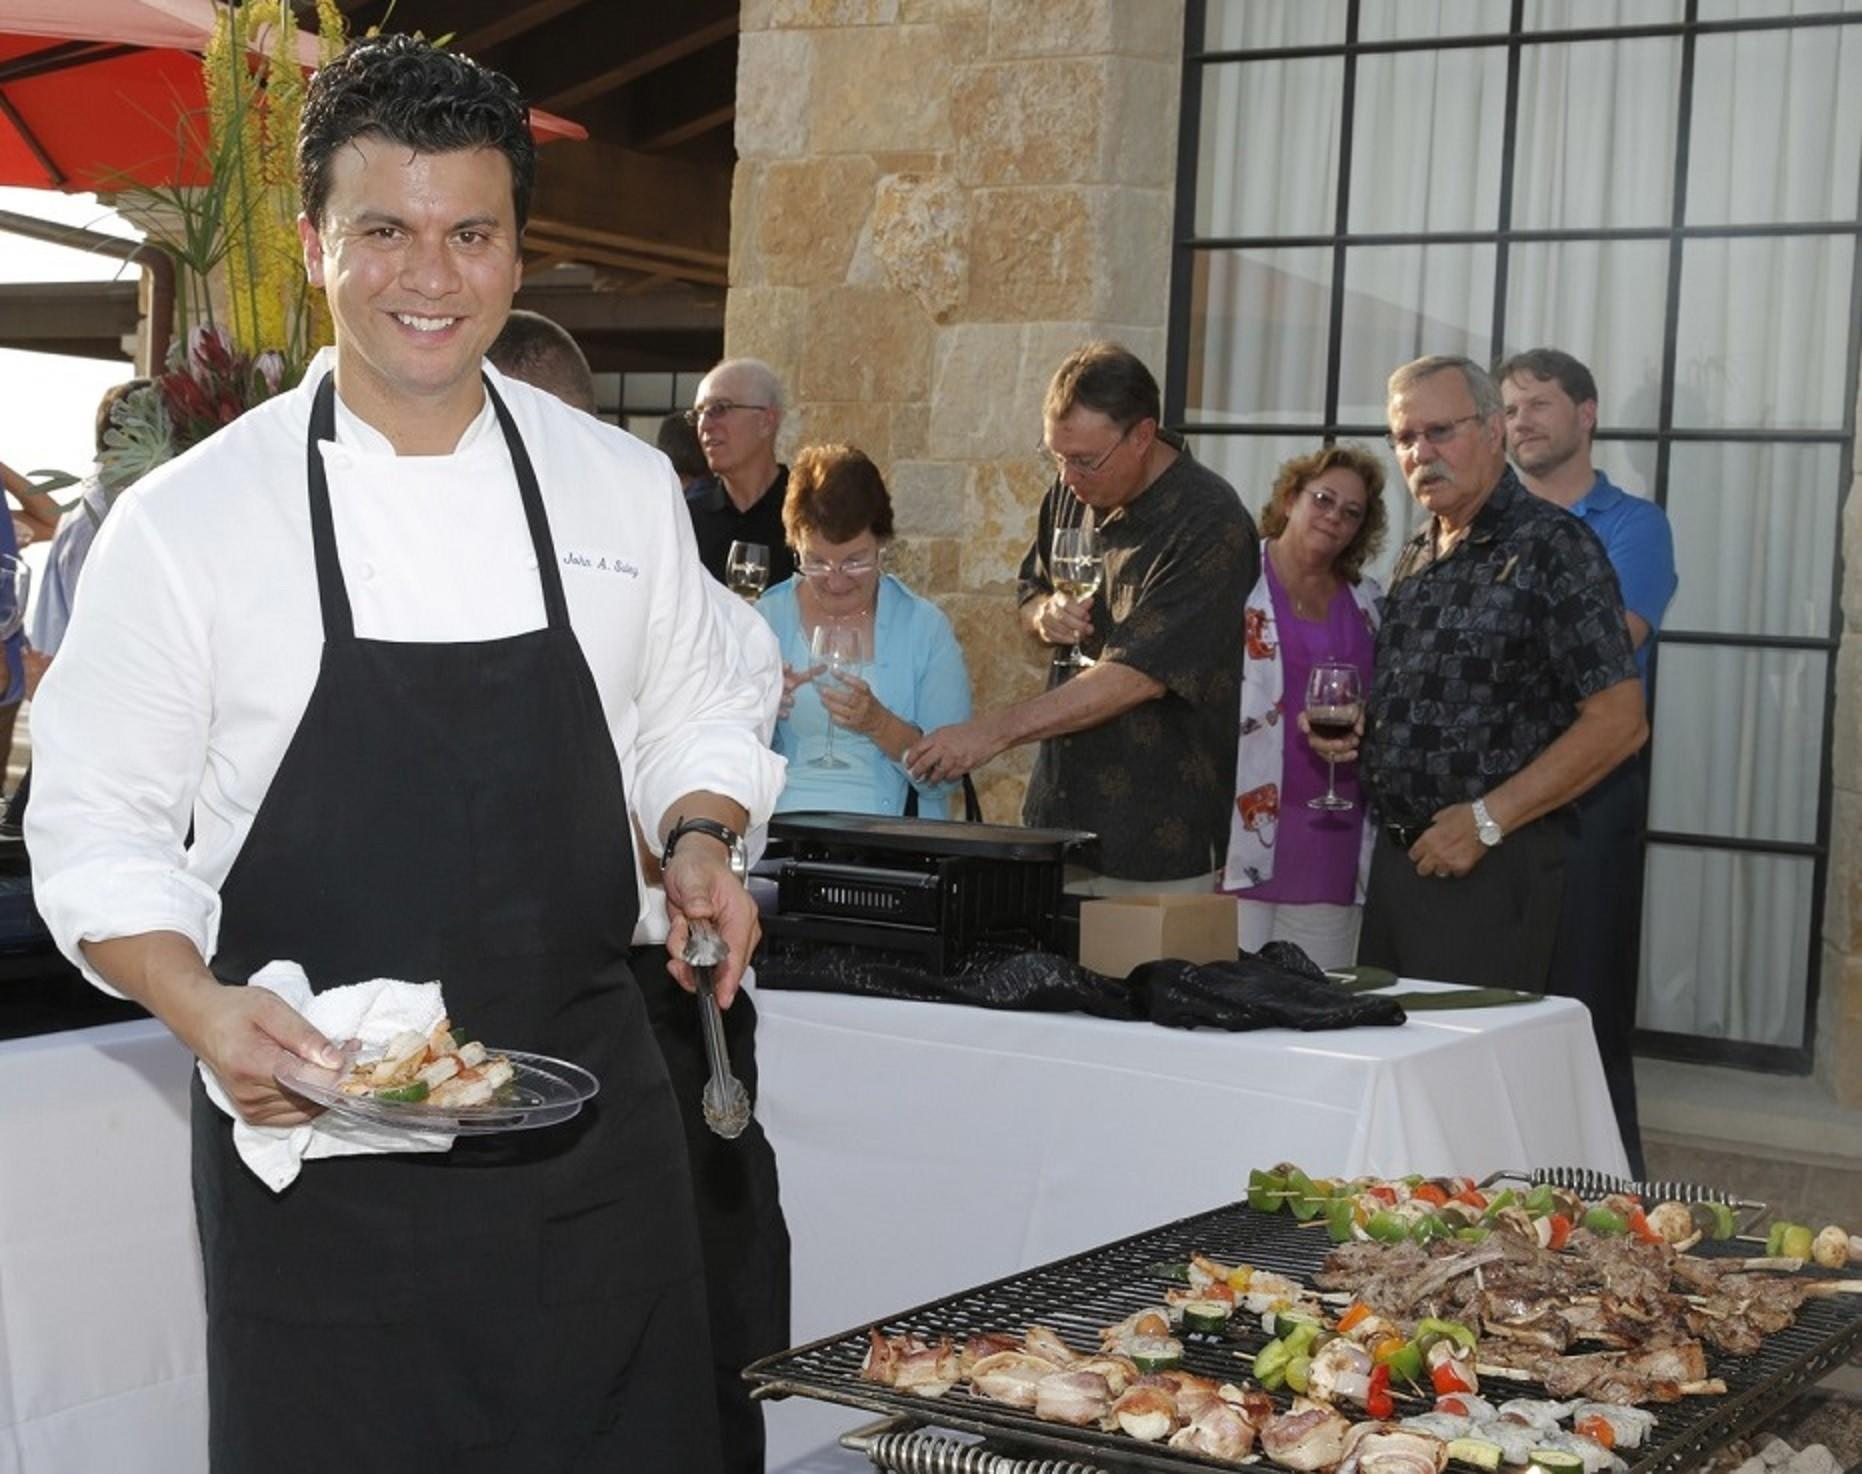 Celebrity Cruises executive chef John Suley, pictured at an event last year in Malibu, will be serving up dishes generally found in the restaurants of Celebrity Cruises ships at a festival next month in Irvine.